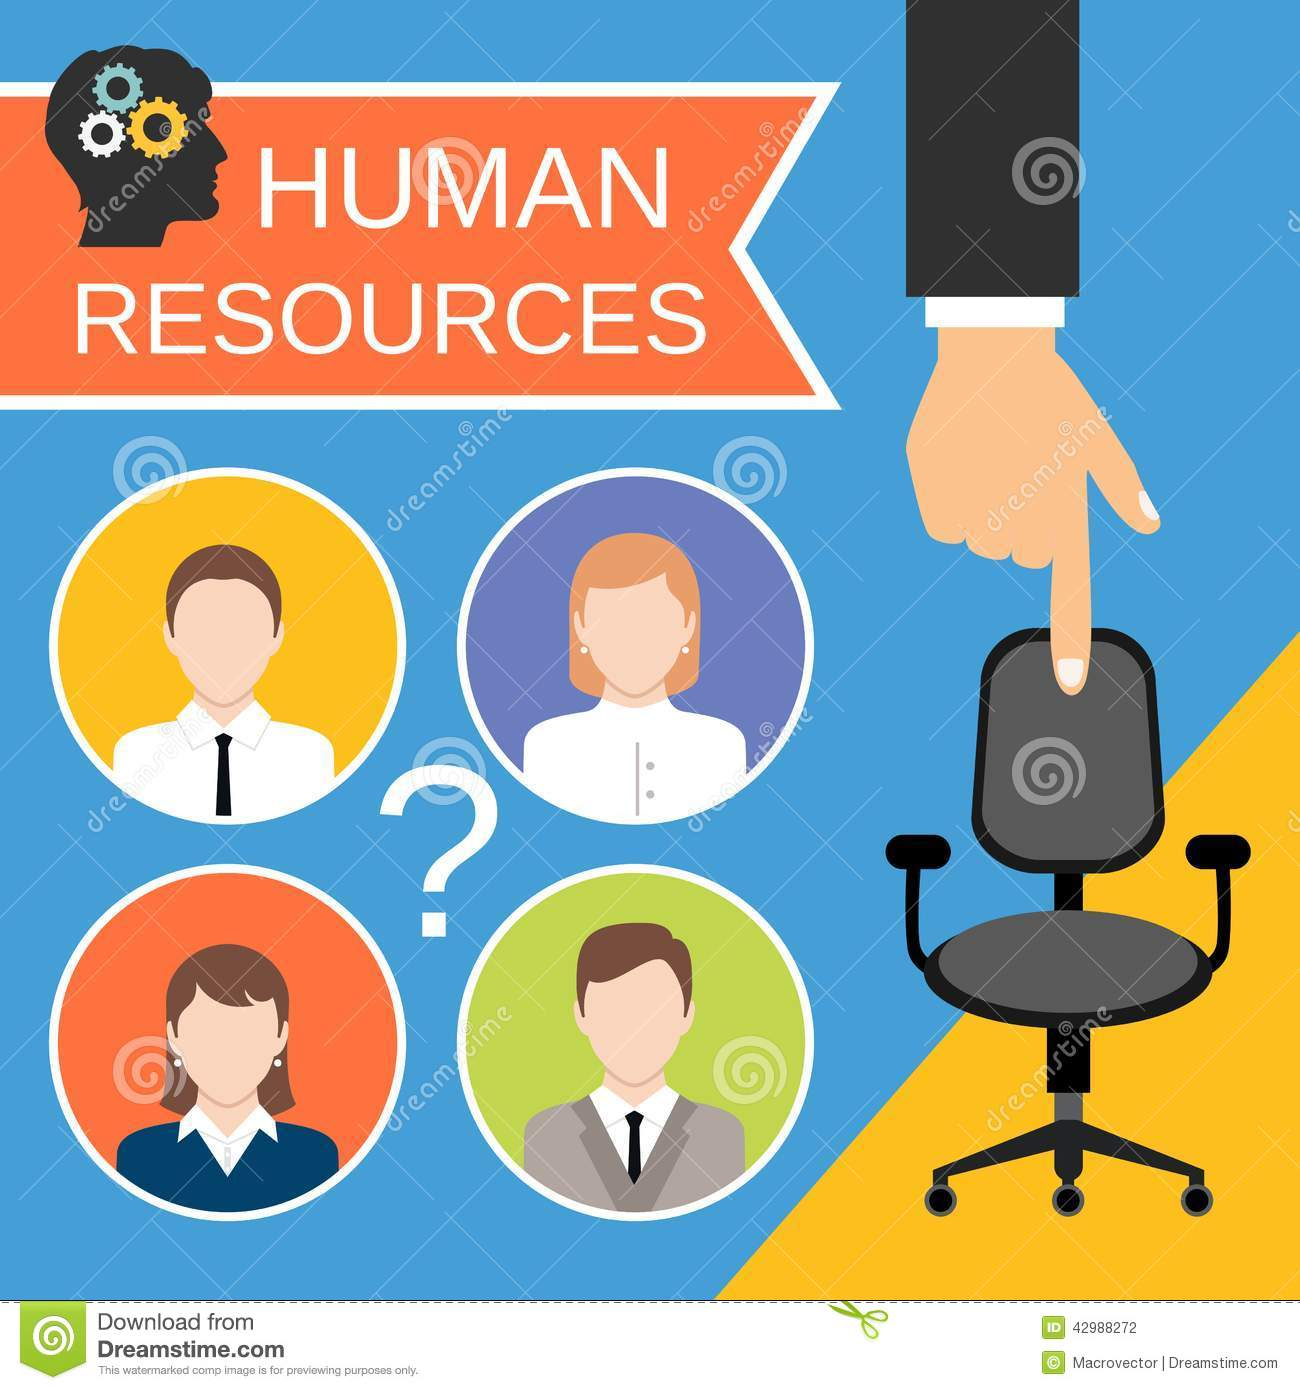 Human Resources: Human Resources Concept Stock Vector